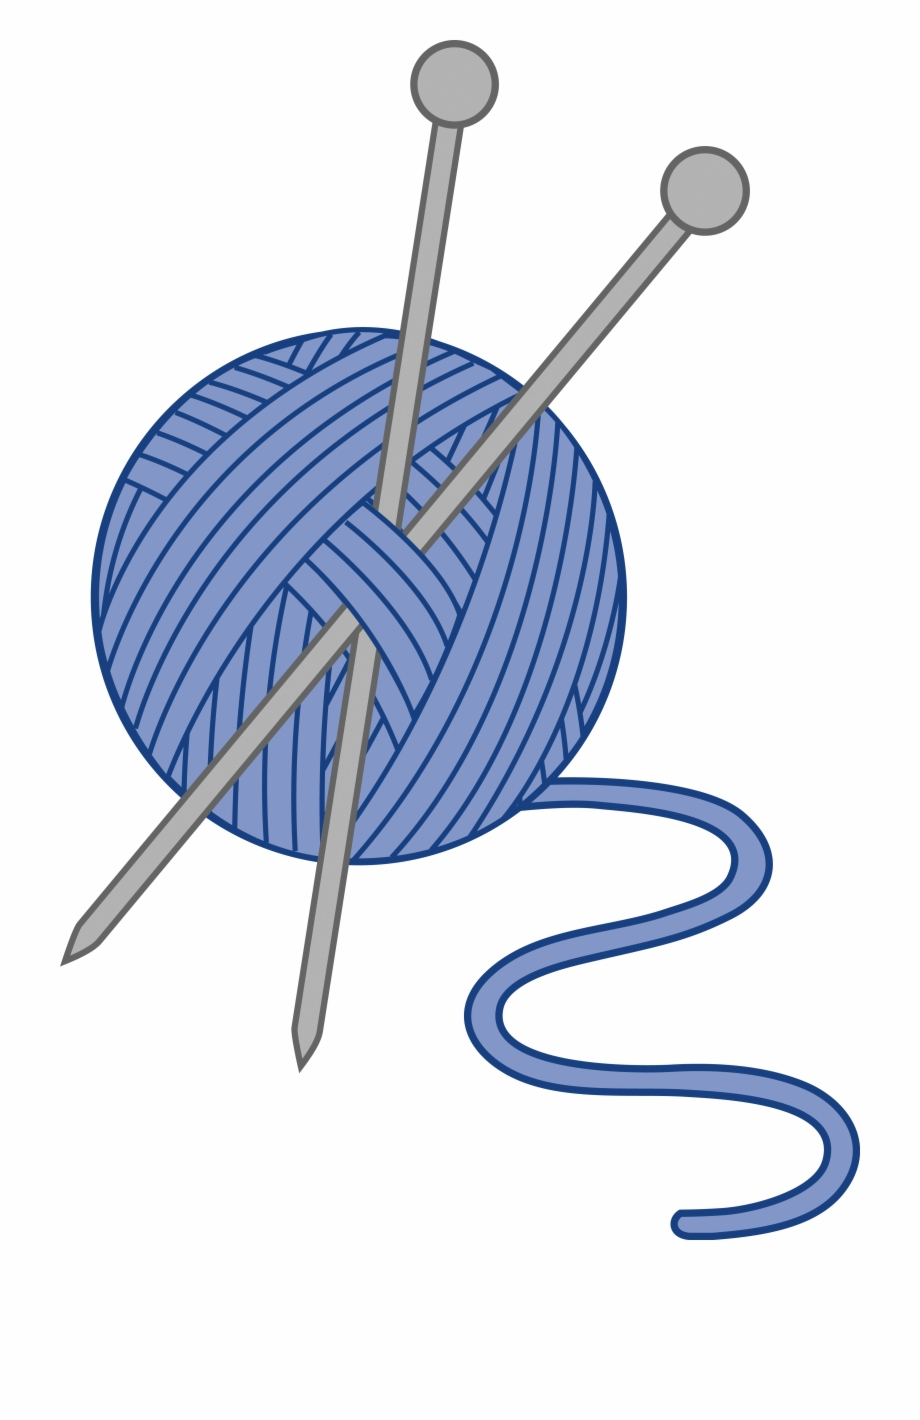 Crafts clipart knit. Arts and knitting clip